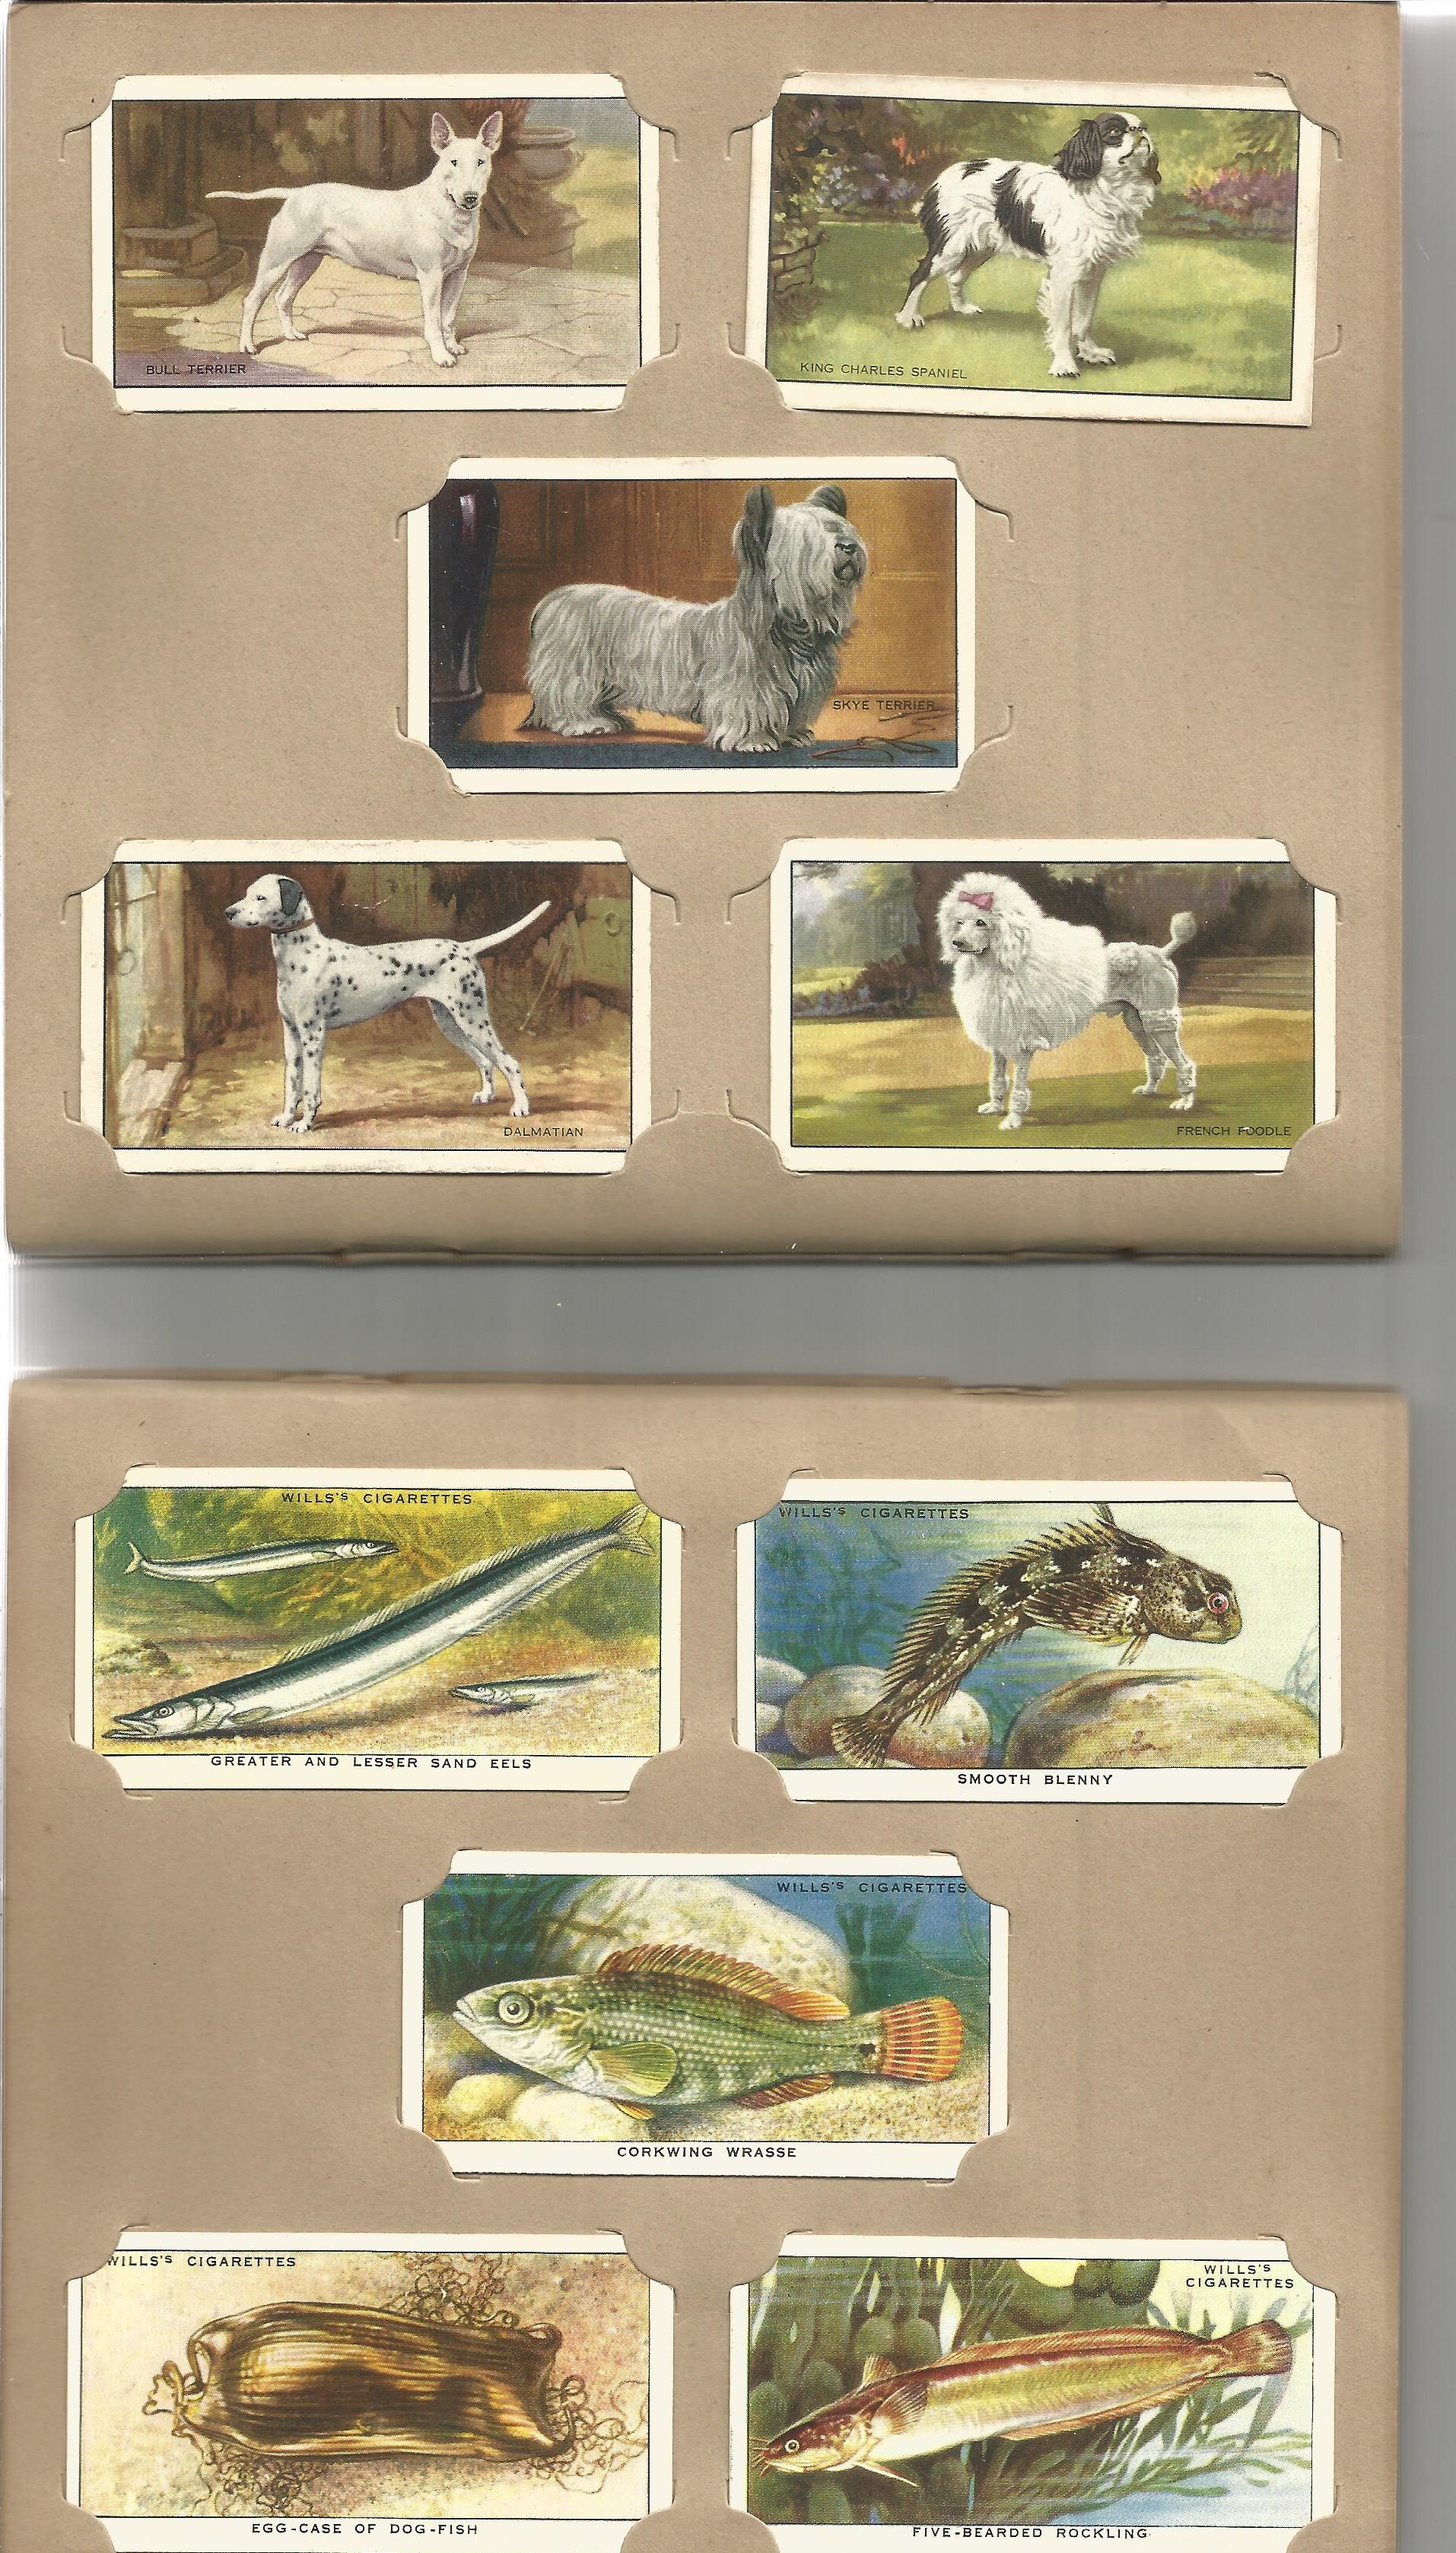 Cigarette card collection. 3 sets. 1938 dogs 48 cards, 1938 the seashore 50 cards and 1939 garden